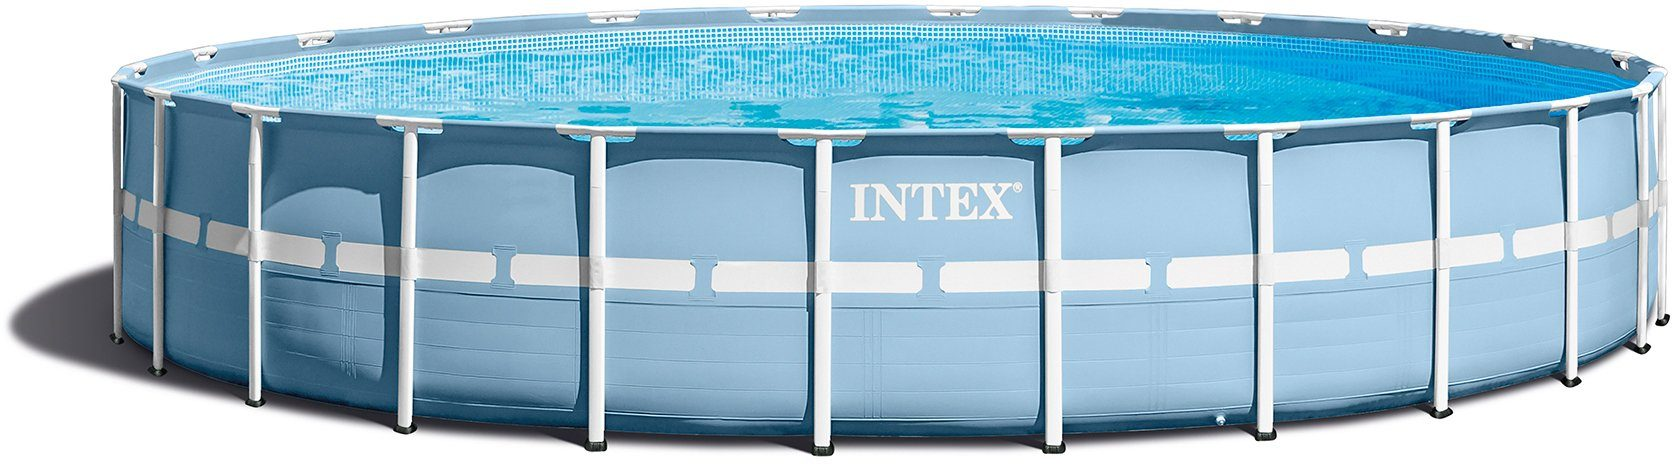 Intex Pool-Komplettset, »PRISM Frame Pool-Komplettset«